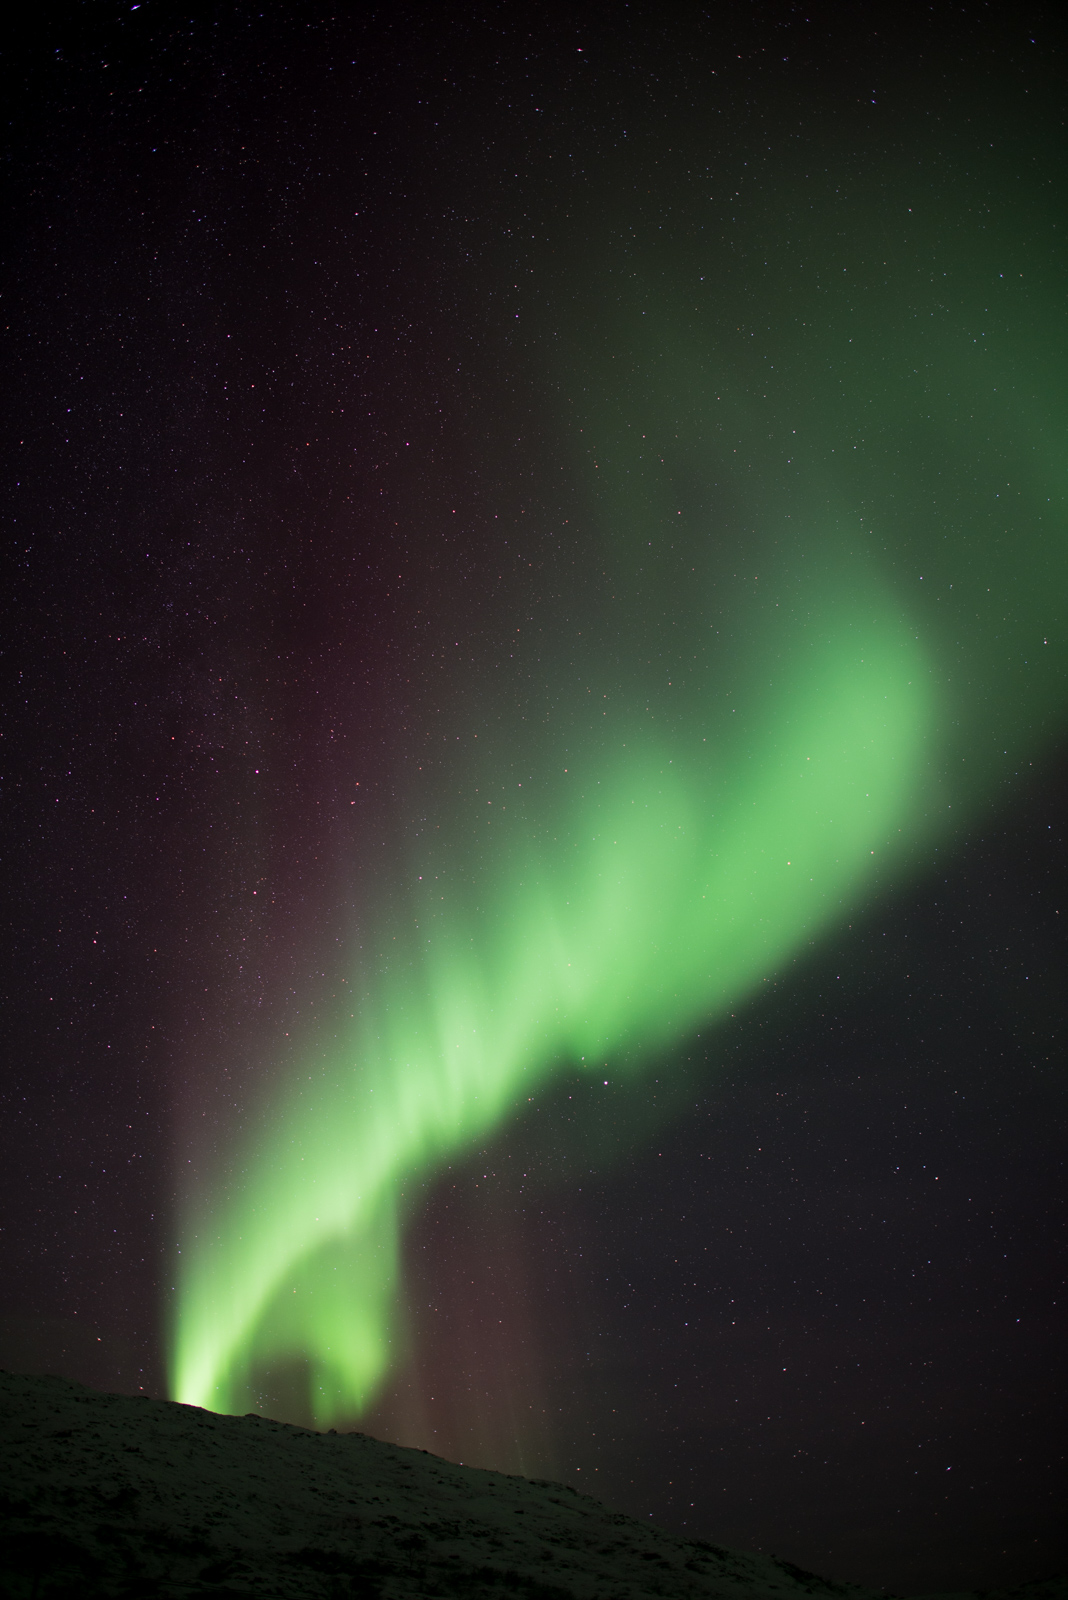 Aurora Borealis / The Northern Lights